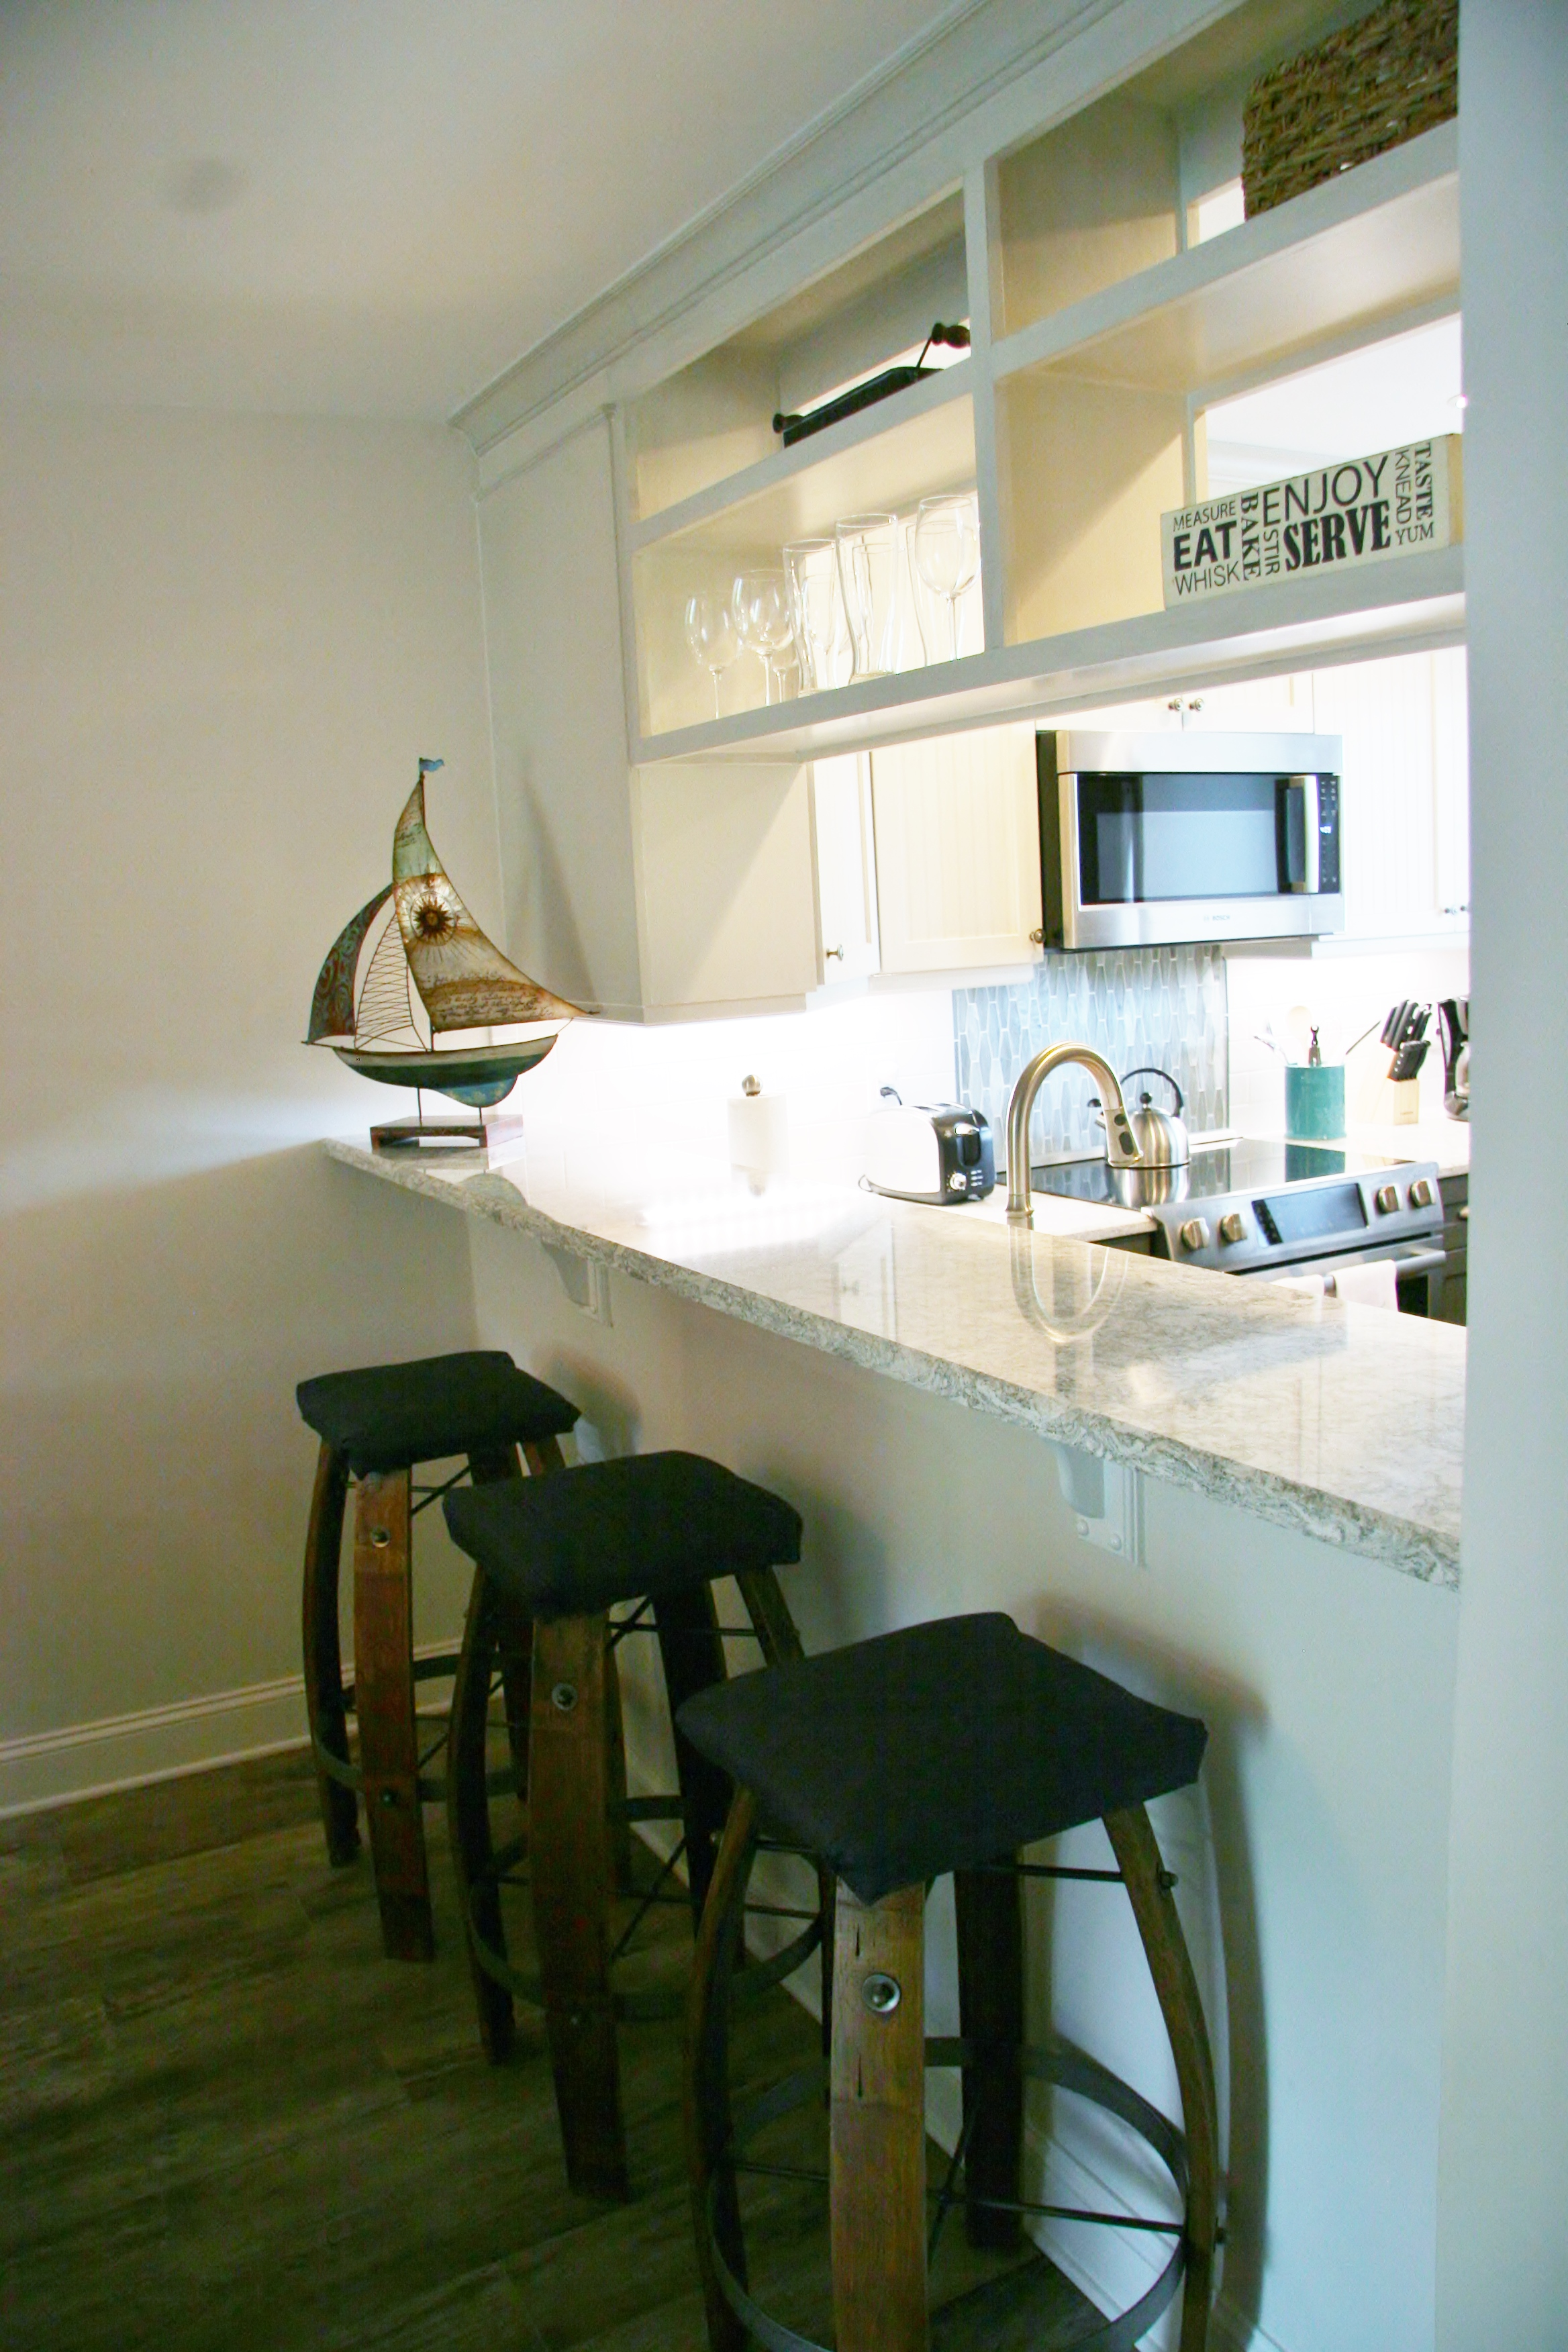 Sit on the bar stools while watching ones in the kitchen.